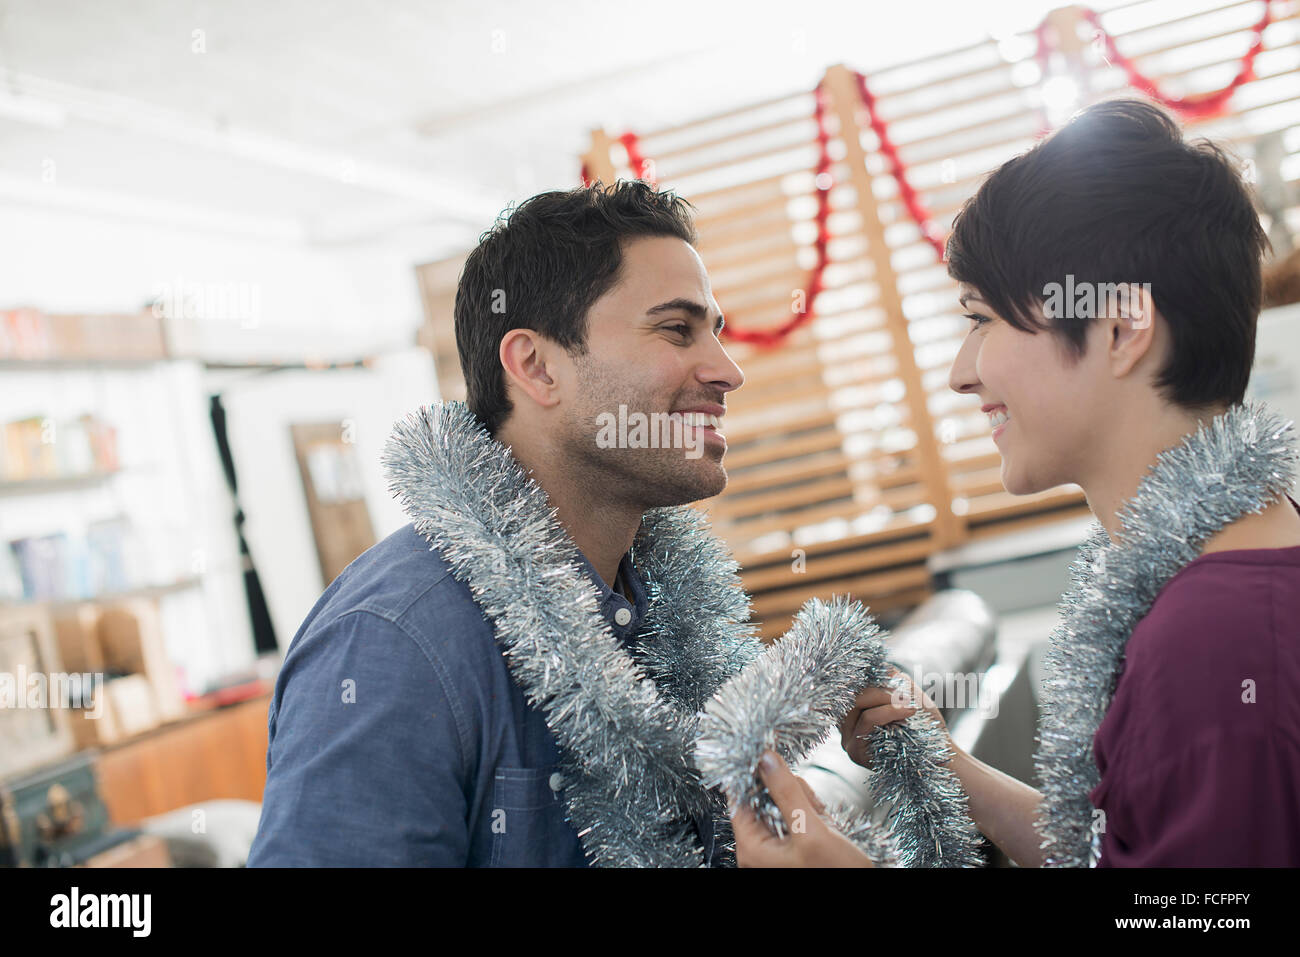 A room decorated with tinsel and streamers. A man and woman wearing silver tinsel around their necks. - Stock Image